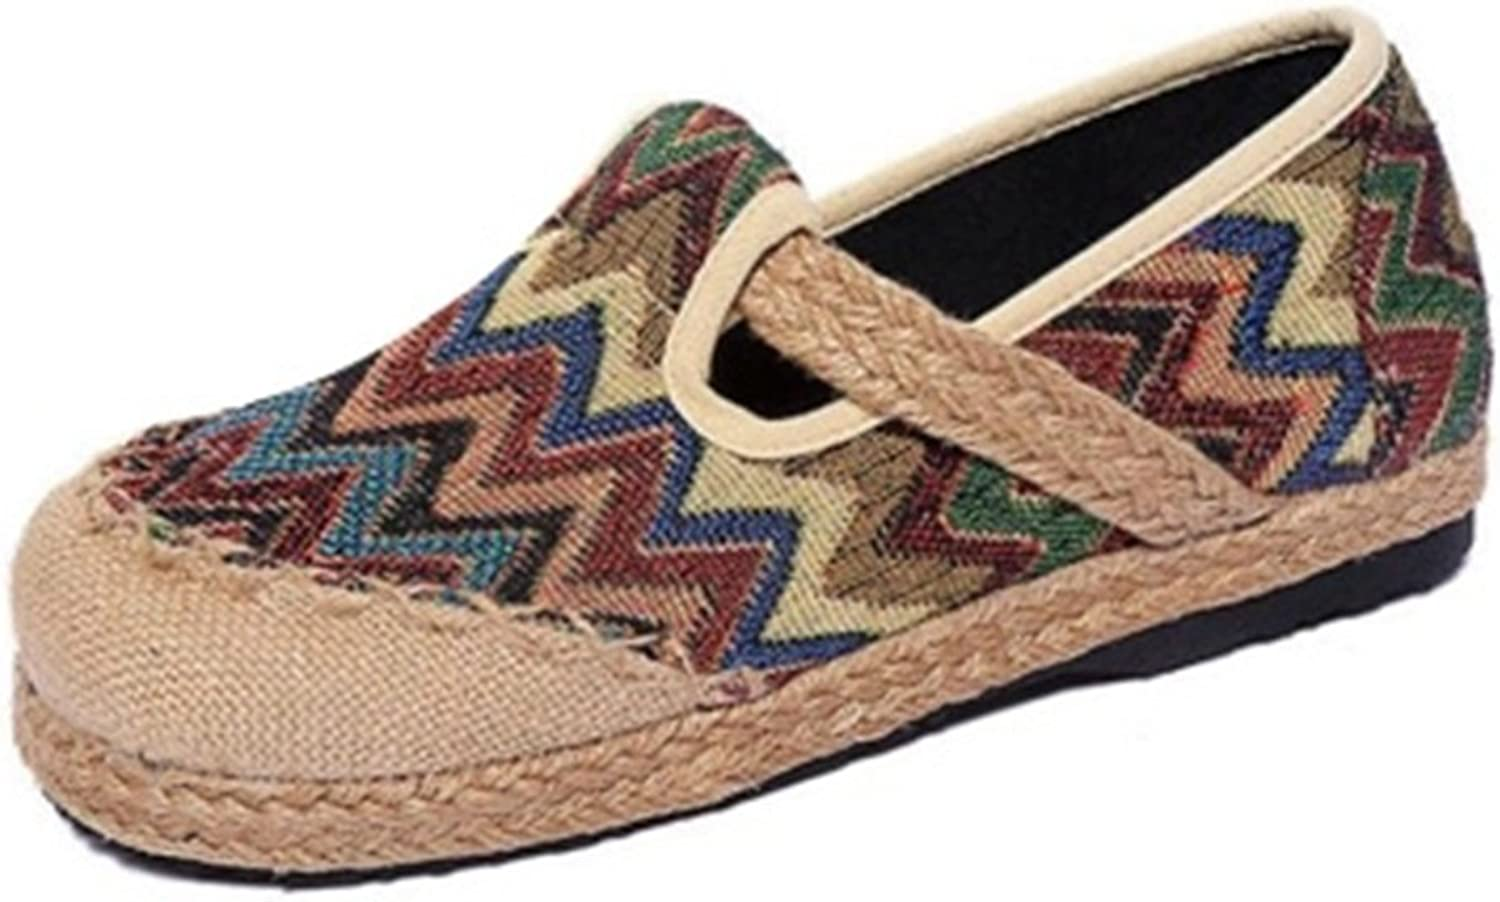 GIY Women's Retro Loafers Flat Moccasin Slip-On Round Toe Linen Strap Casual colorful Dress Sandals shoes